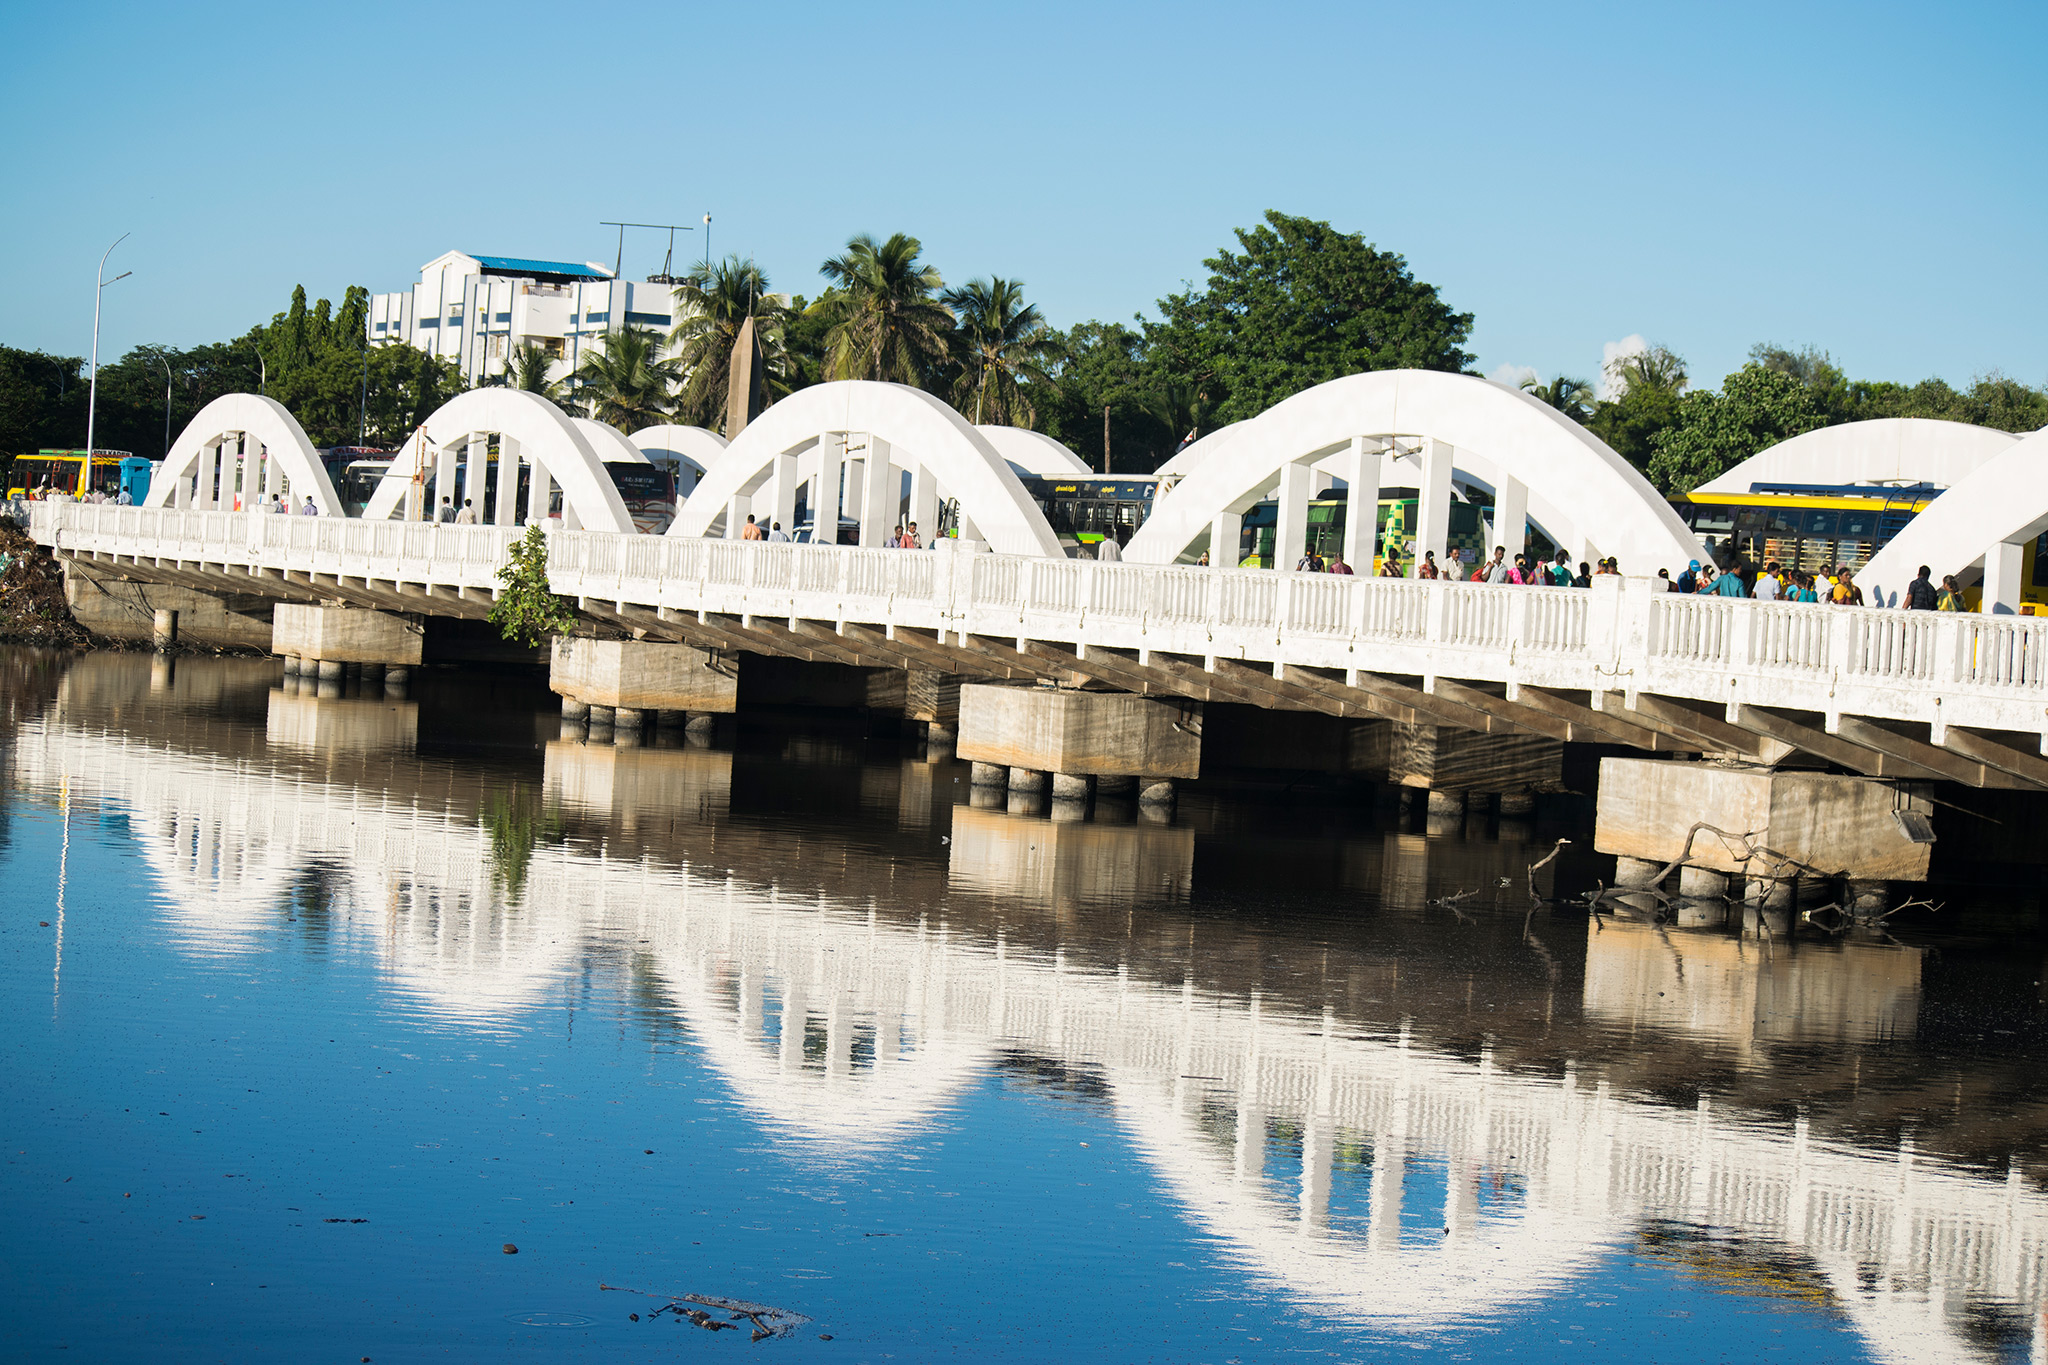 Napier bridge (Landmark of Madras)